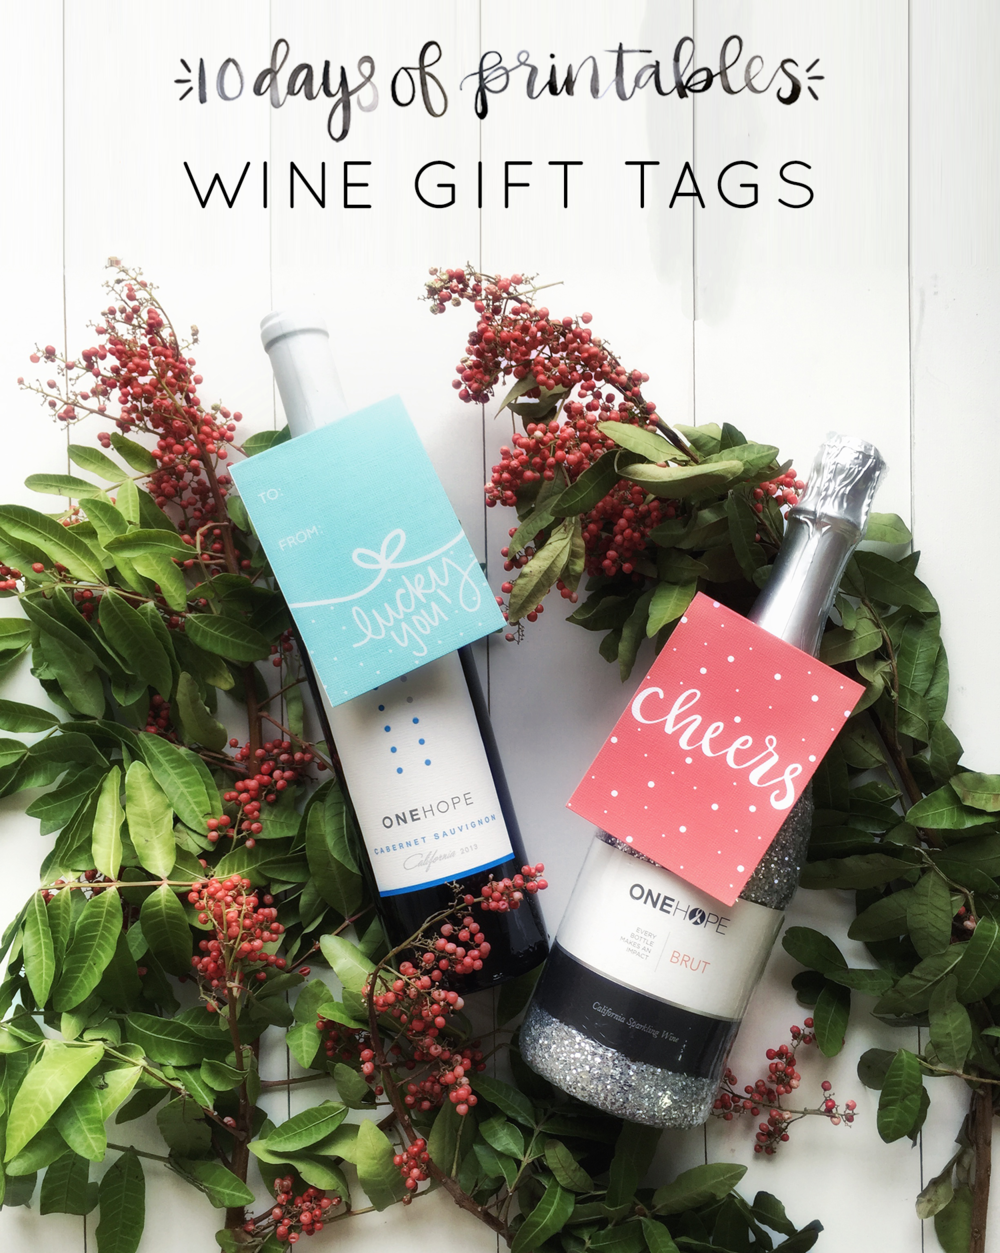 Bring your hostess with the mostess the gift of wine with these cute and festive holiday gift tags. Simply print, cut out, and place over the neck of a bottle of wine, beer, or even a nice bottle of olive oil for a simple gift for your host. Printable available at Hey Love Designs.